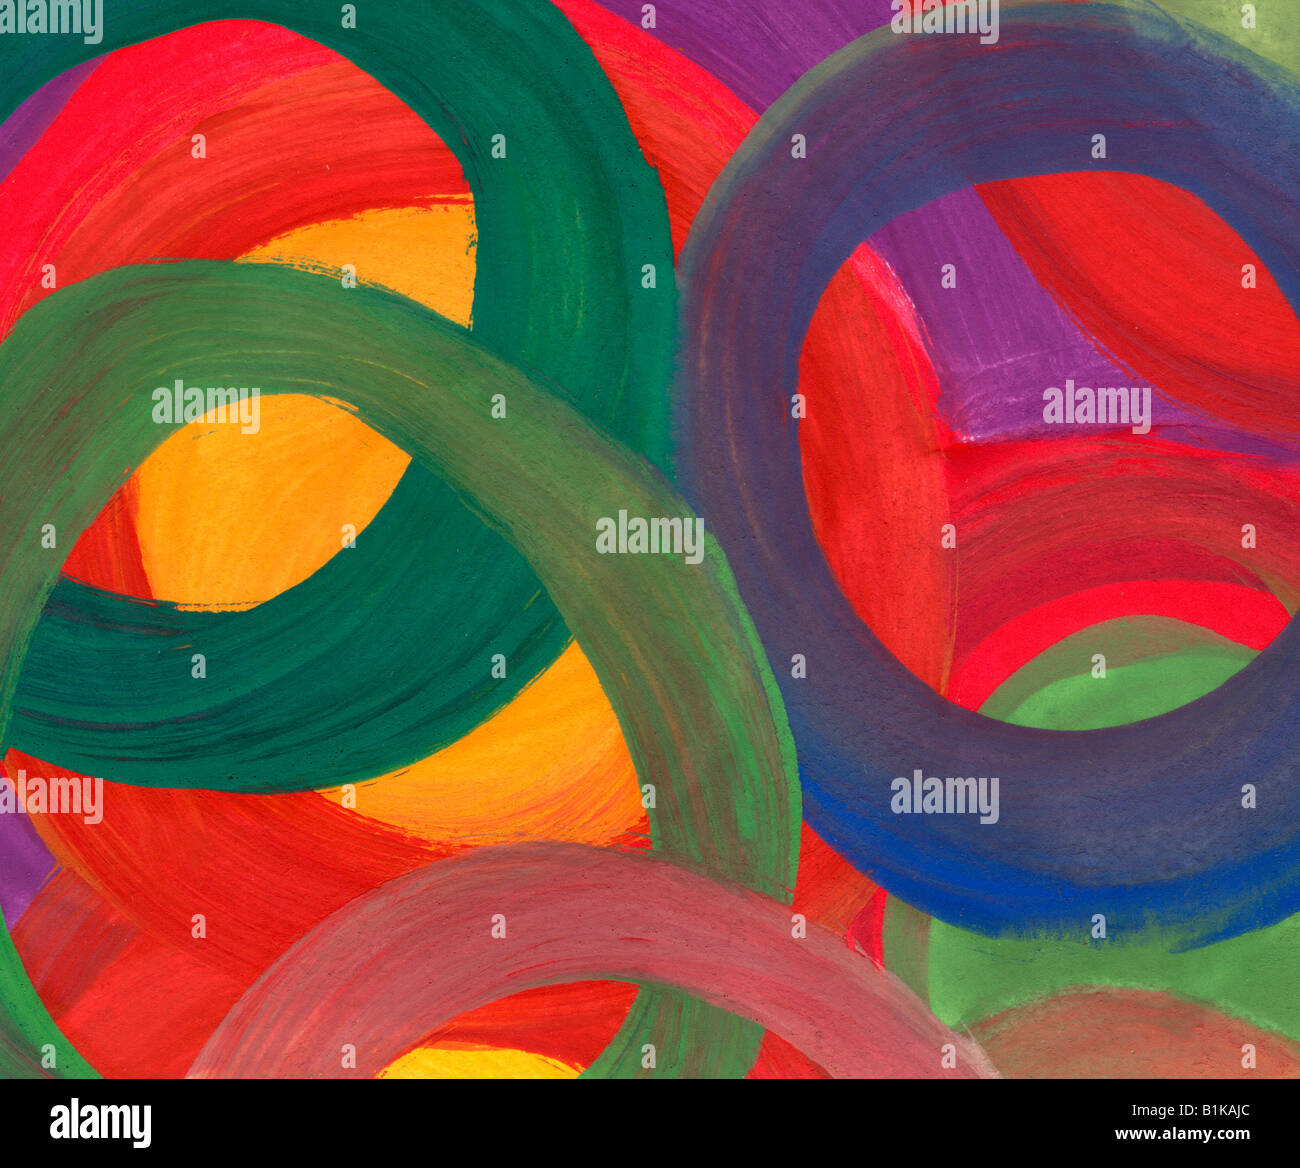 Contexte aquarelle cercles Photo Stock